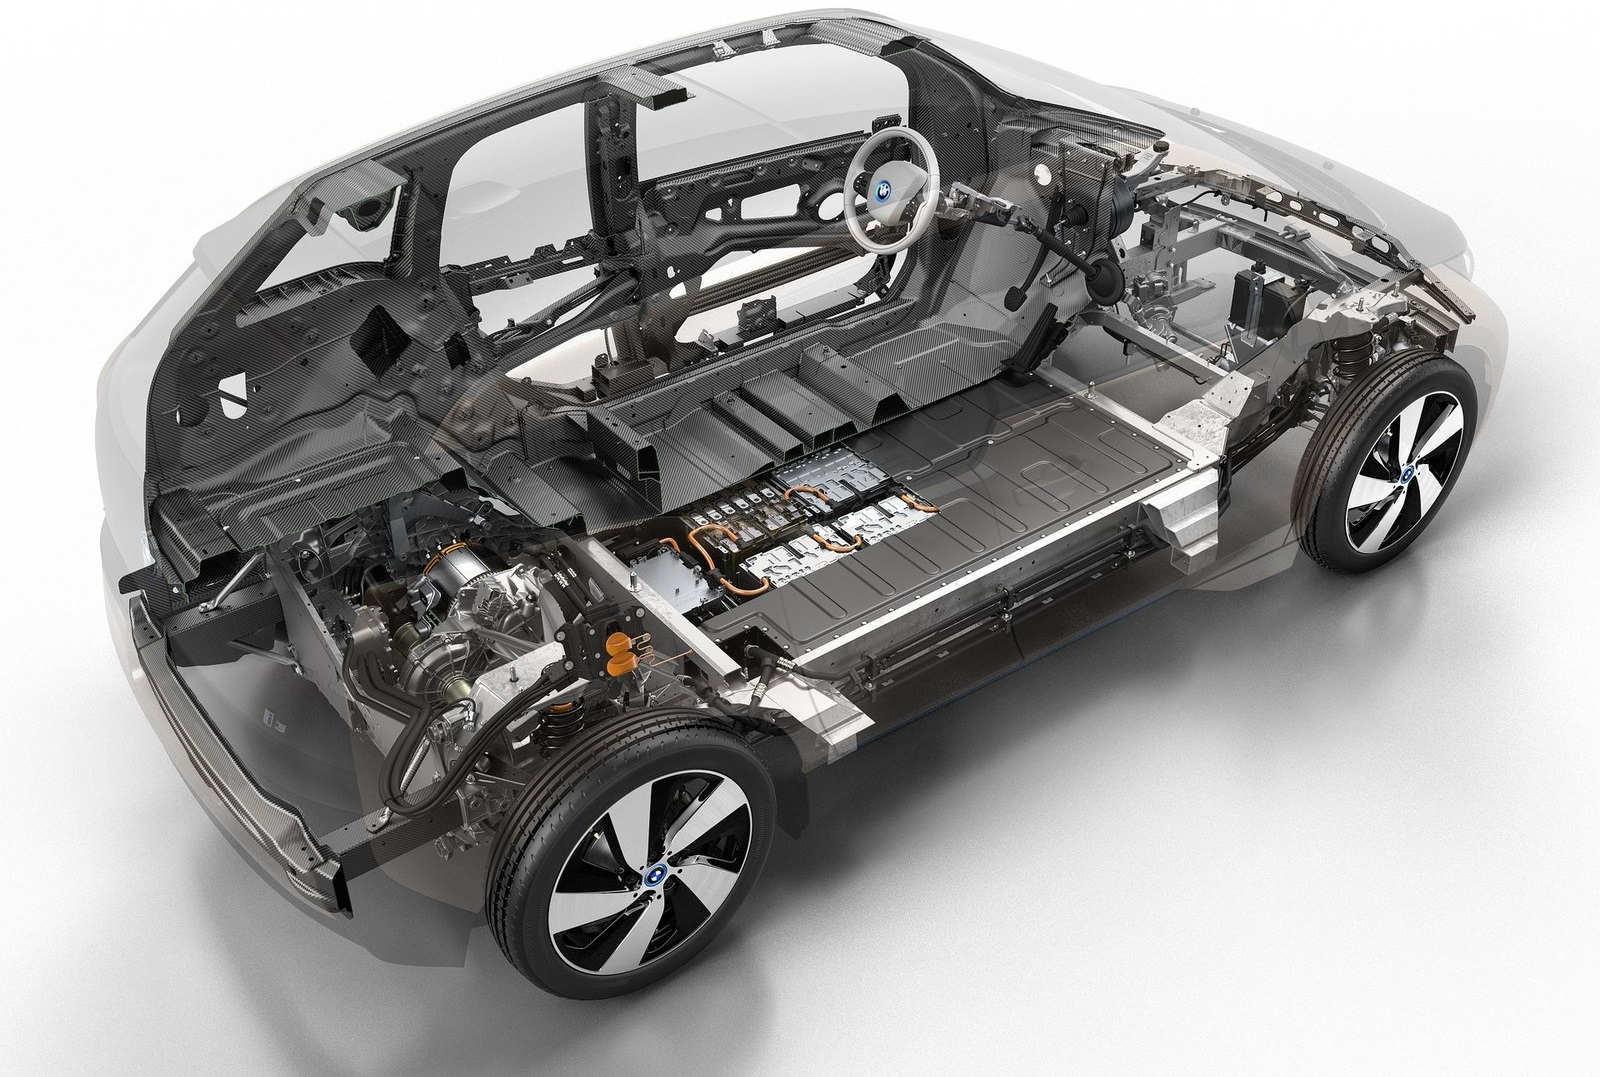 BMW-i3_2014_1600x1200_wallpaper_cd